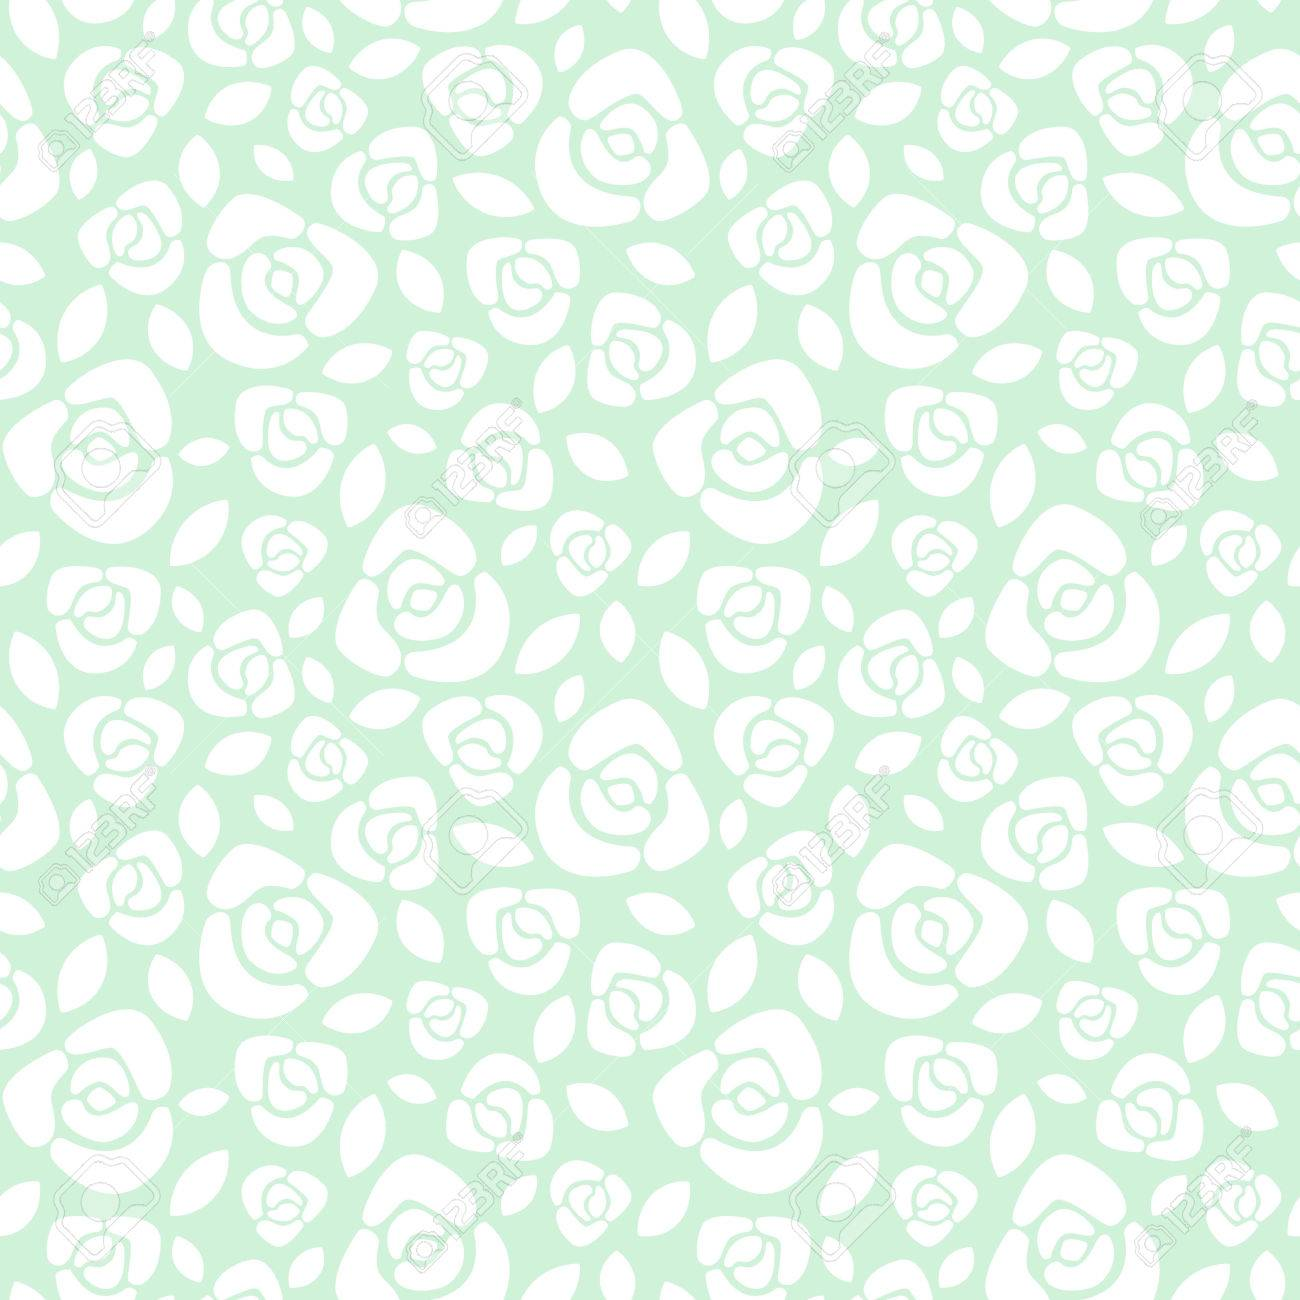 Simple Roses Floral Seamless Pattern Flat Design Roses With